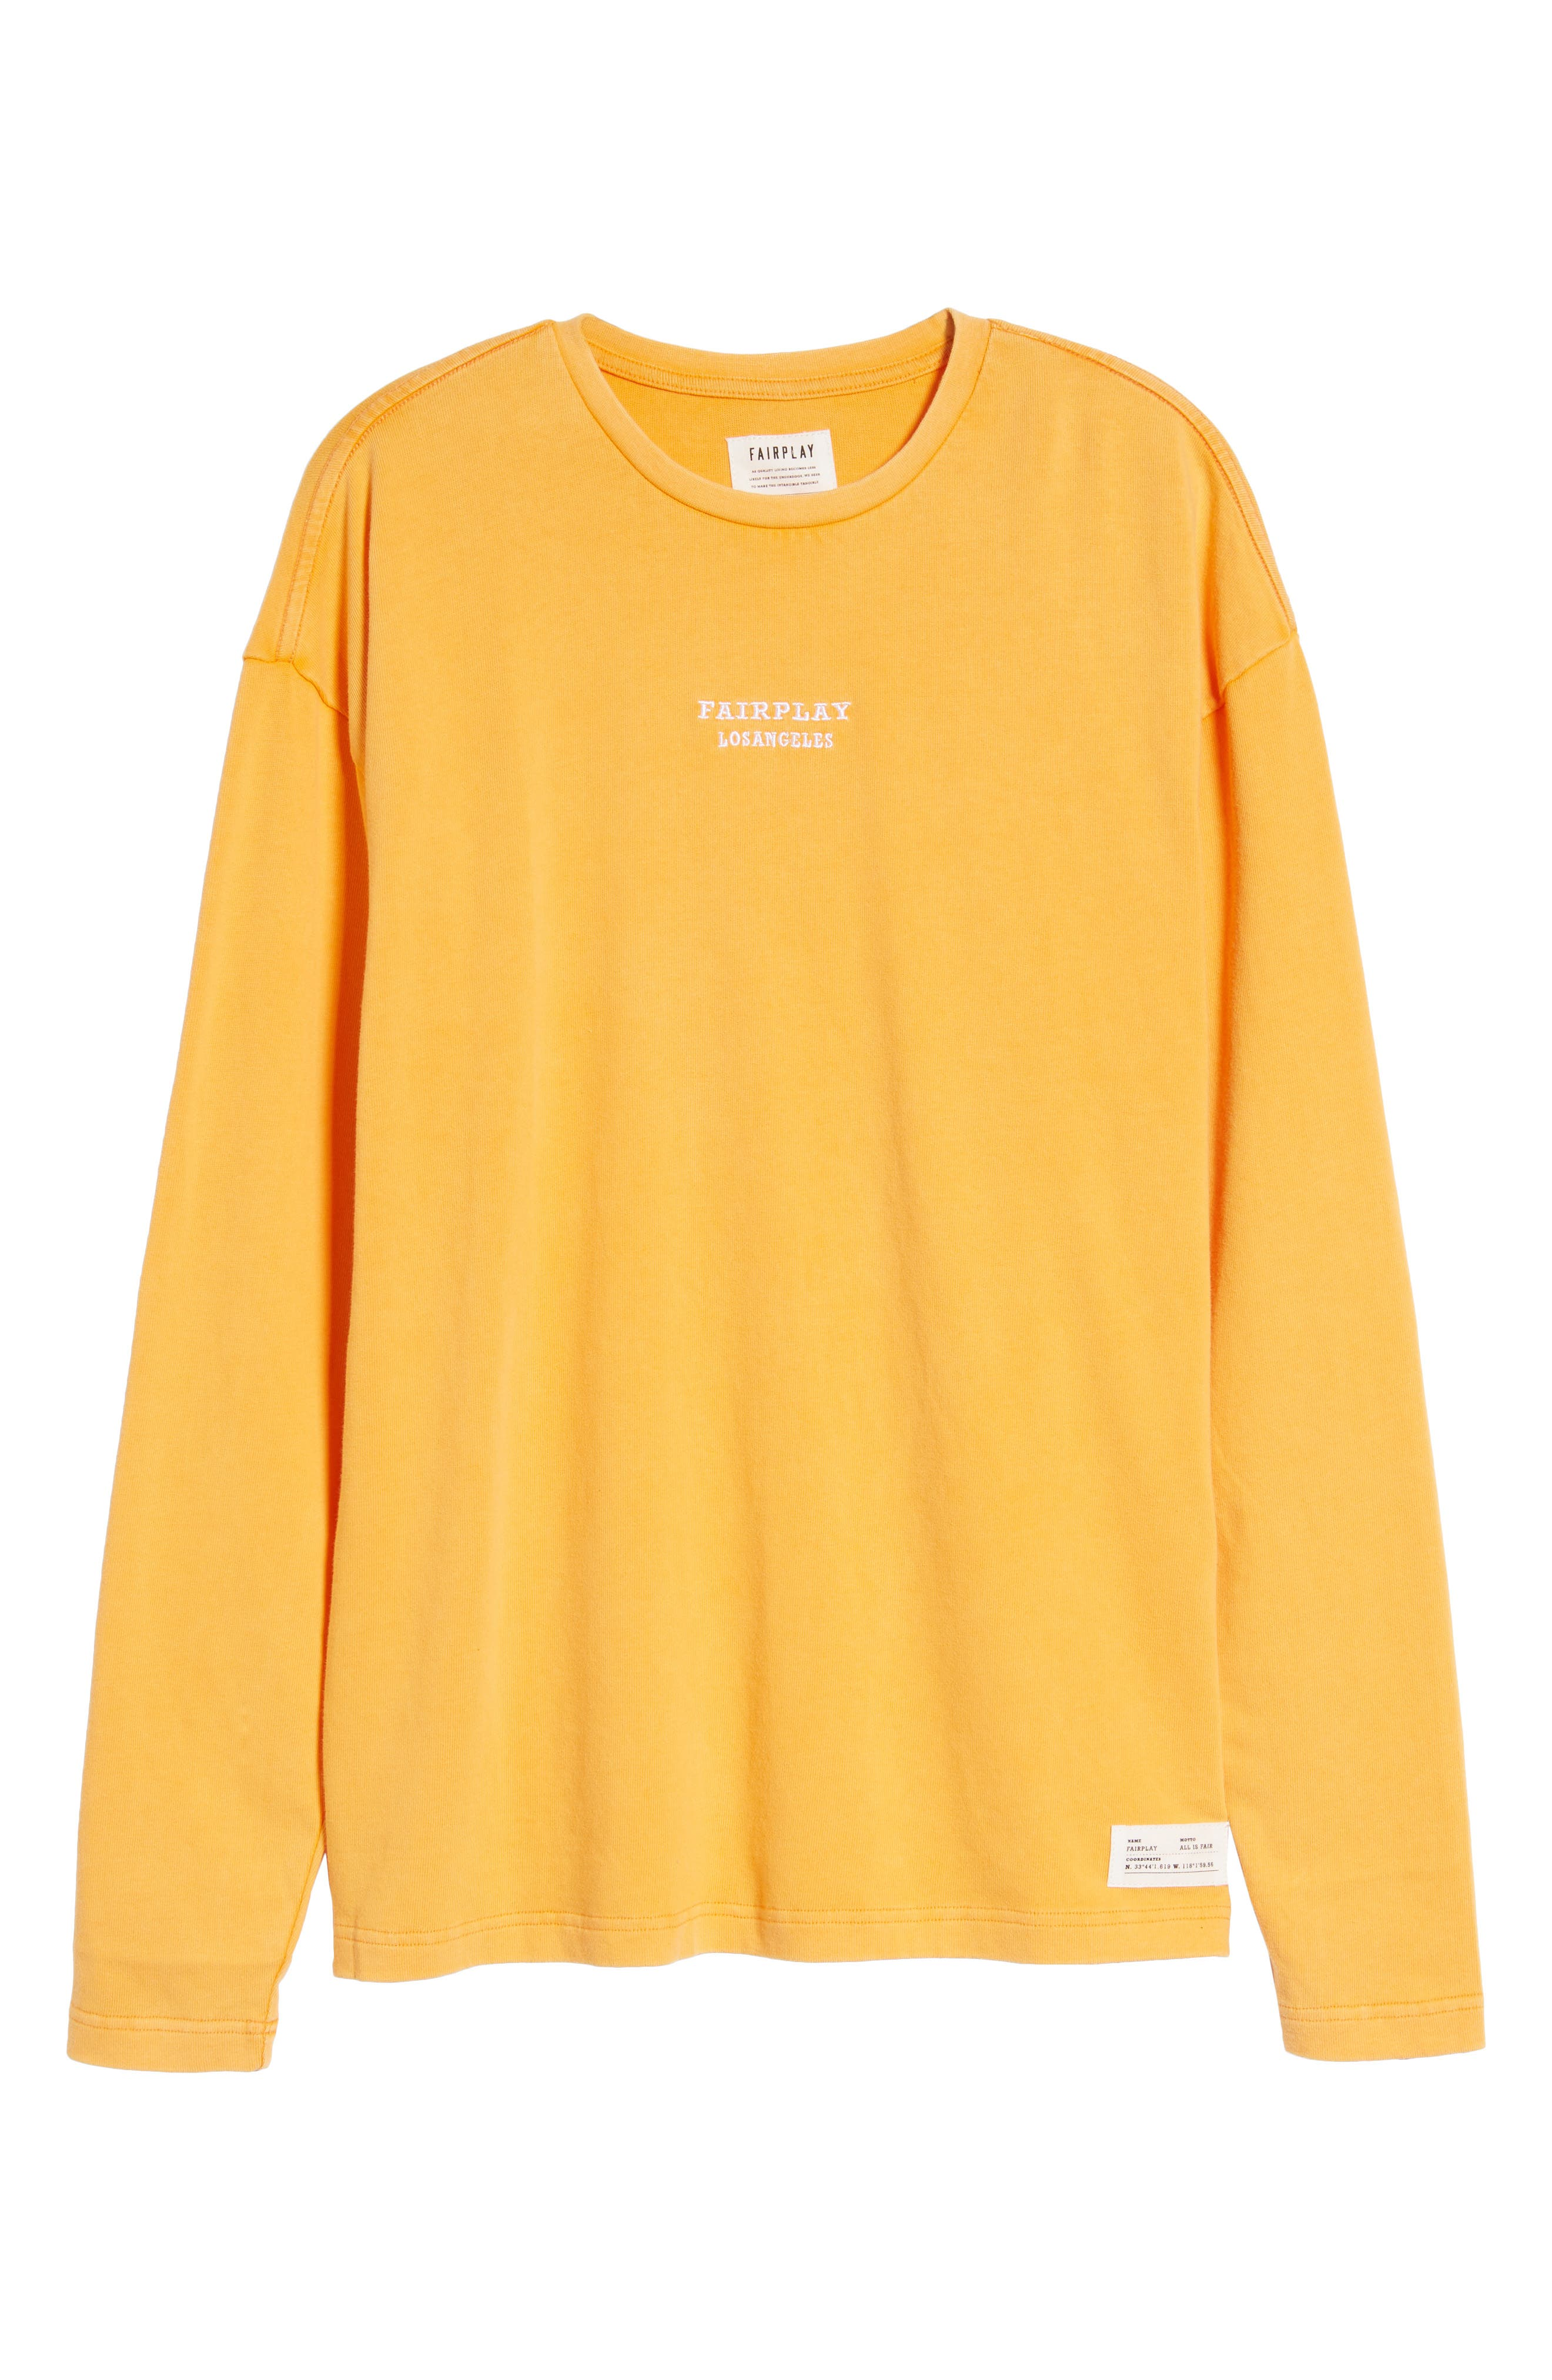 Anderson Sweatshirt,                             Alternate thumbnail 7, color,                             Orange